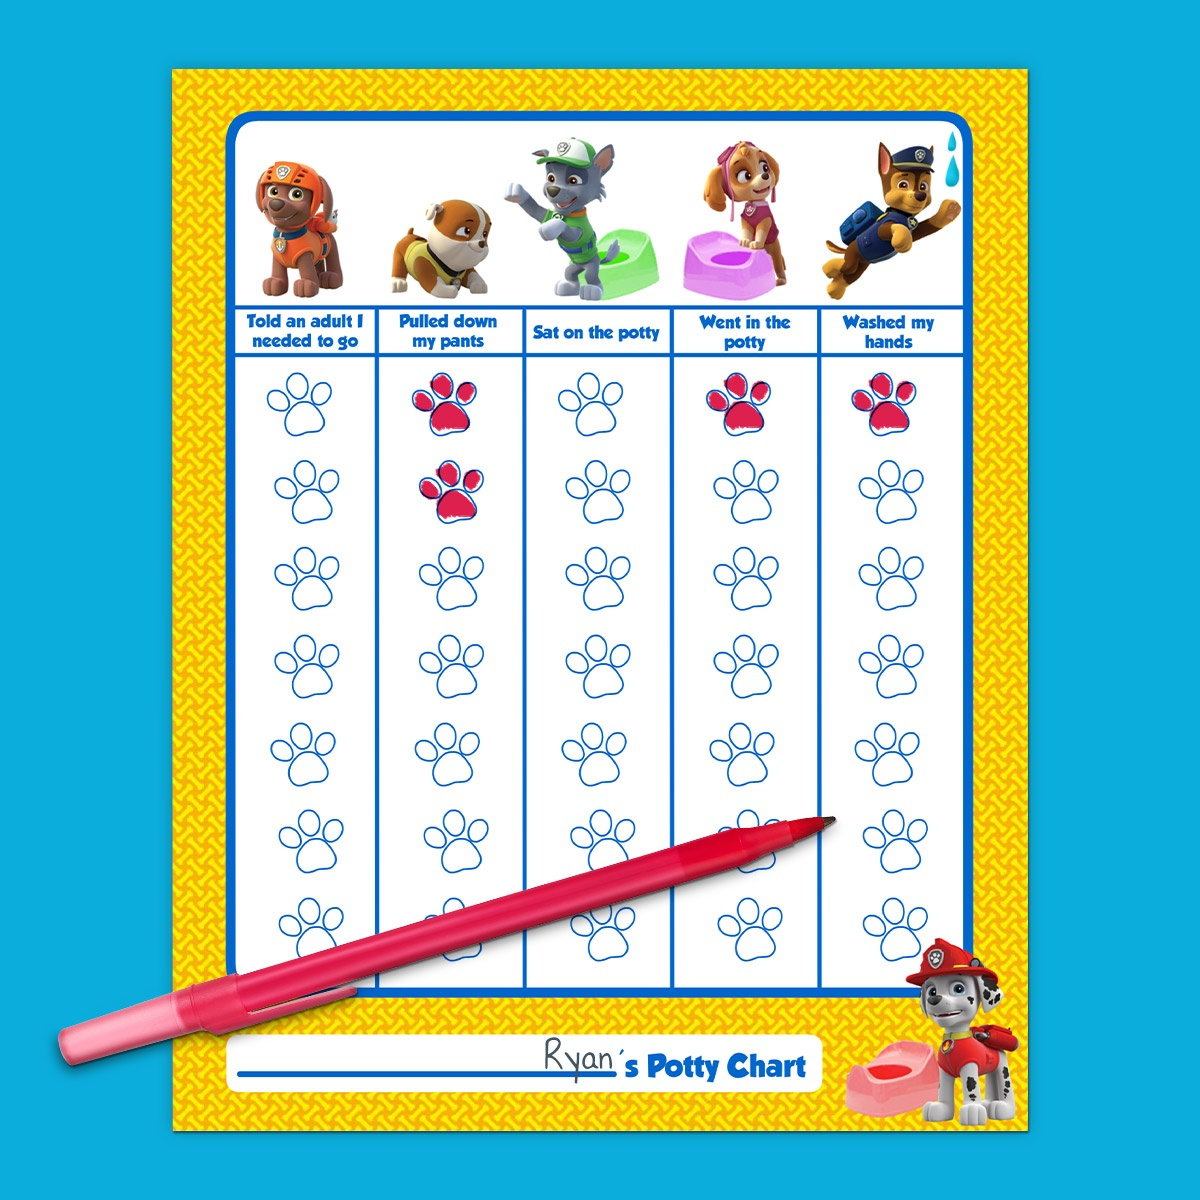 Paw Patrol Potty Training Chart | Nickelodeon Parents - Free Printable Potty Training Books For Toddlers